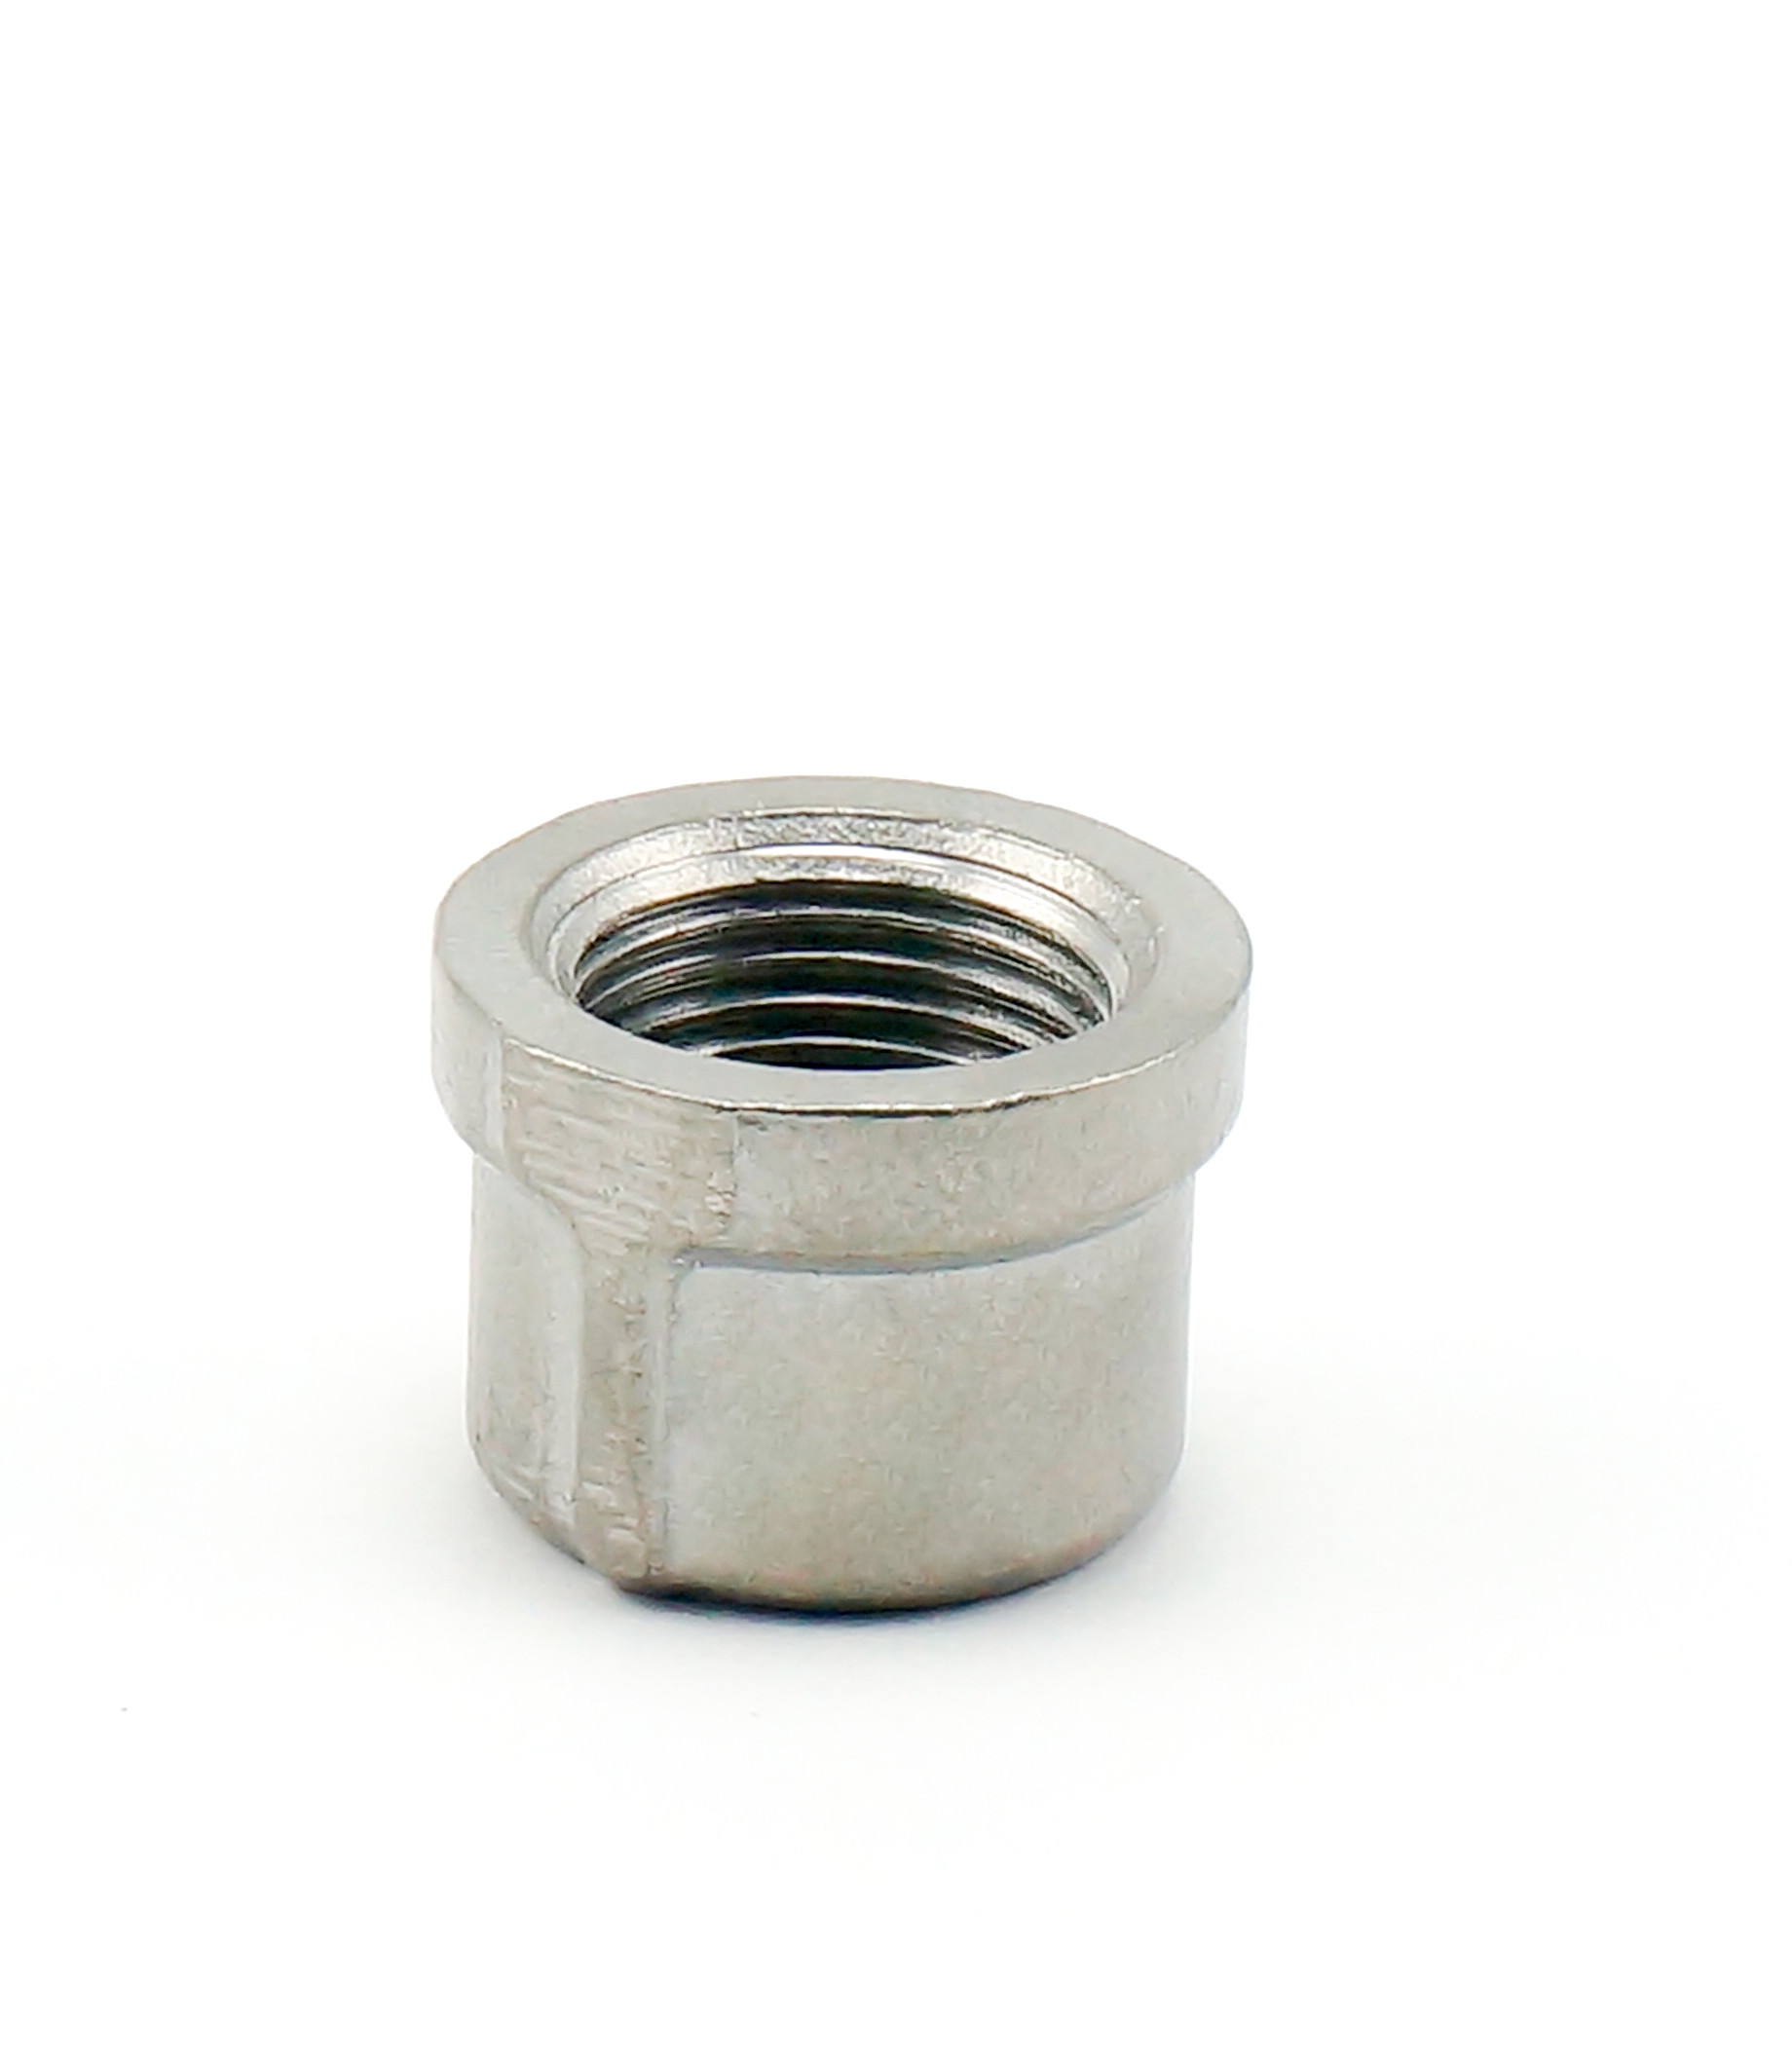 ASTM Standand Stainless Steel Pipe Fittings Butt Welded Industrial Ss End Cap